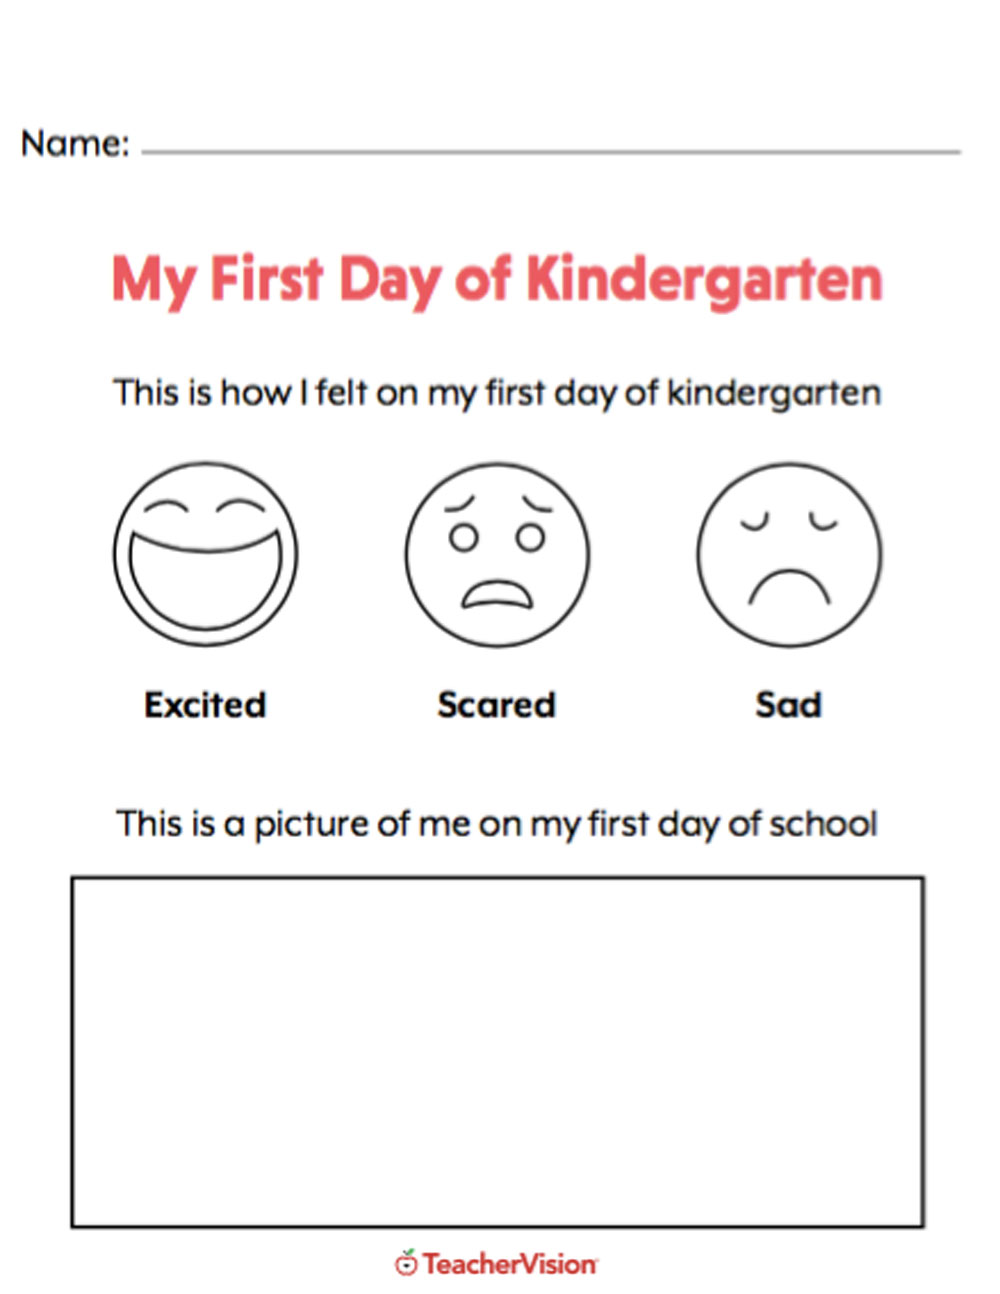 photograph regarding Were Moving Up to Kindergarten Printable Lyrics known as Clroom Pursuits for Grades (K-12) - TeacherVision